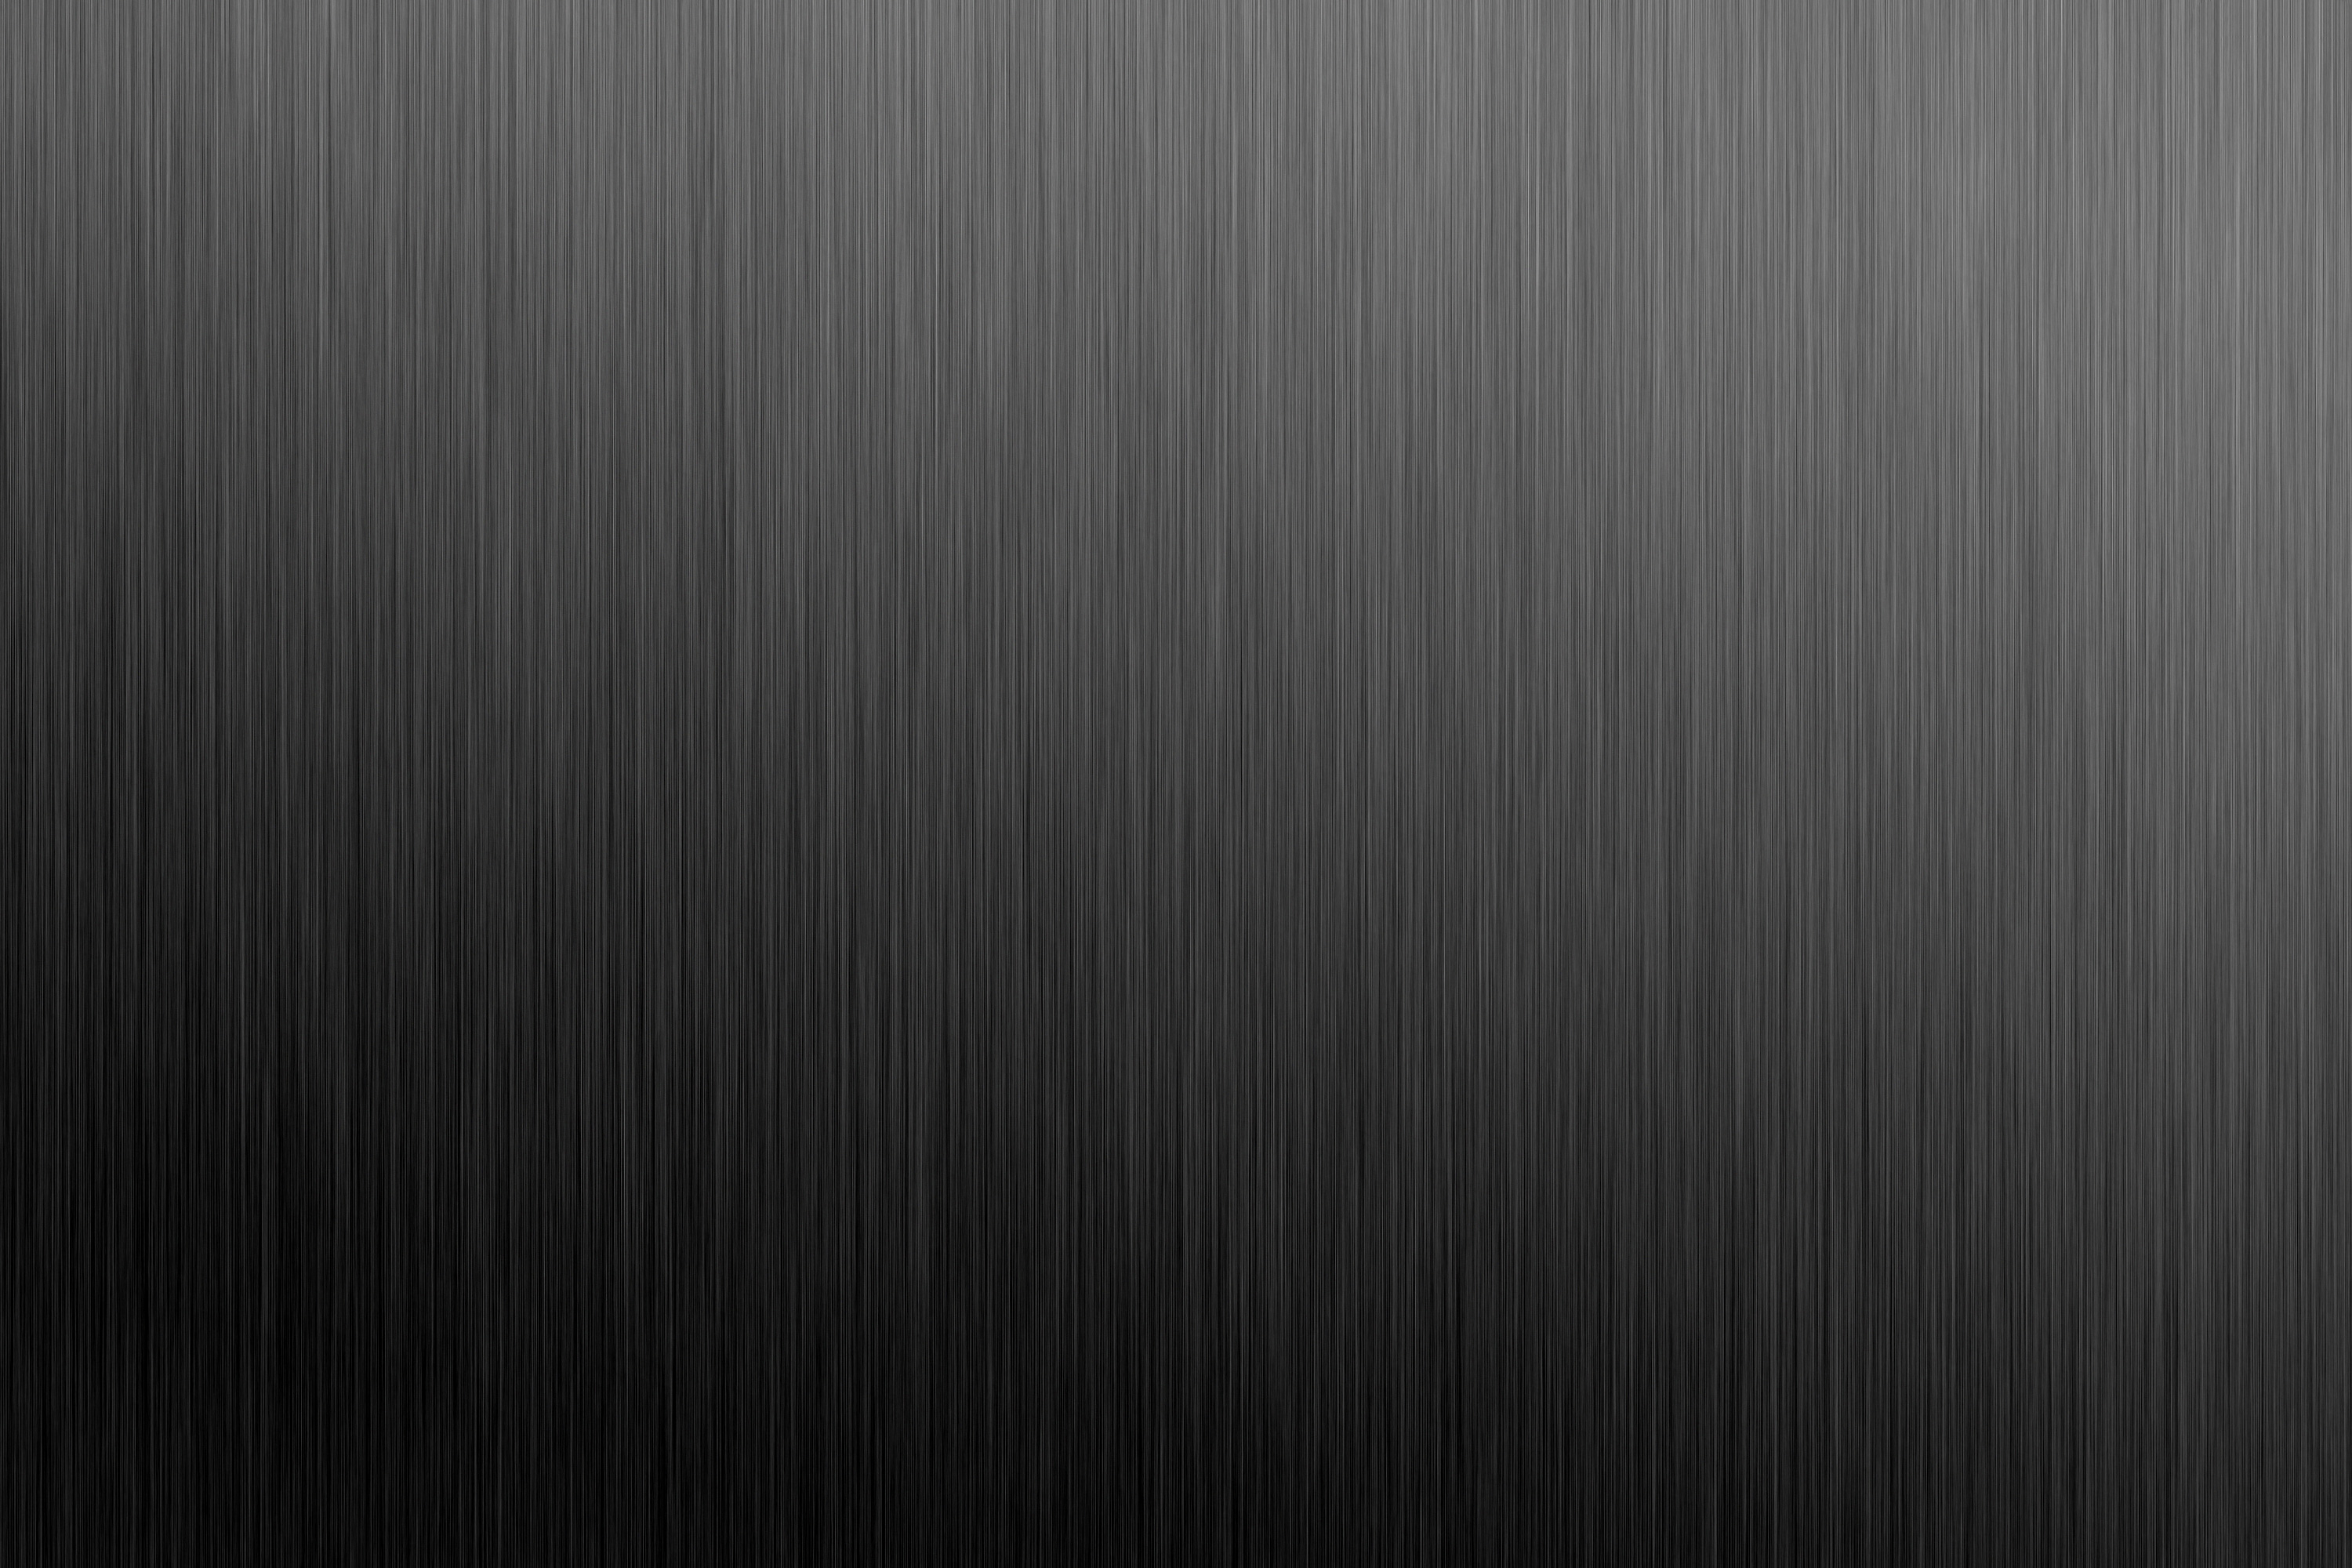 black metal texture, download photo, background, texture, metal, iron